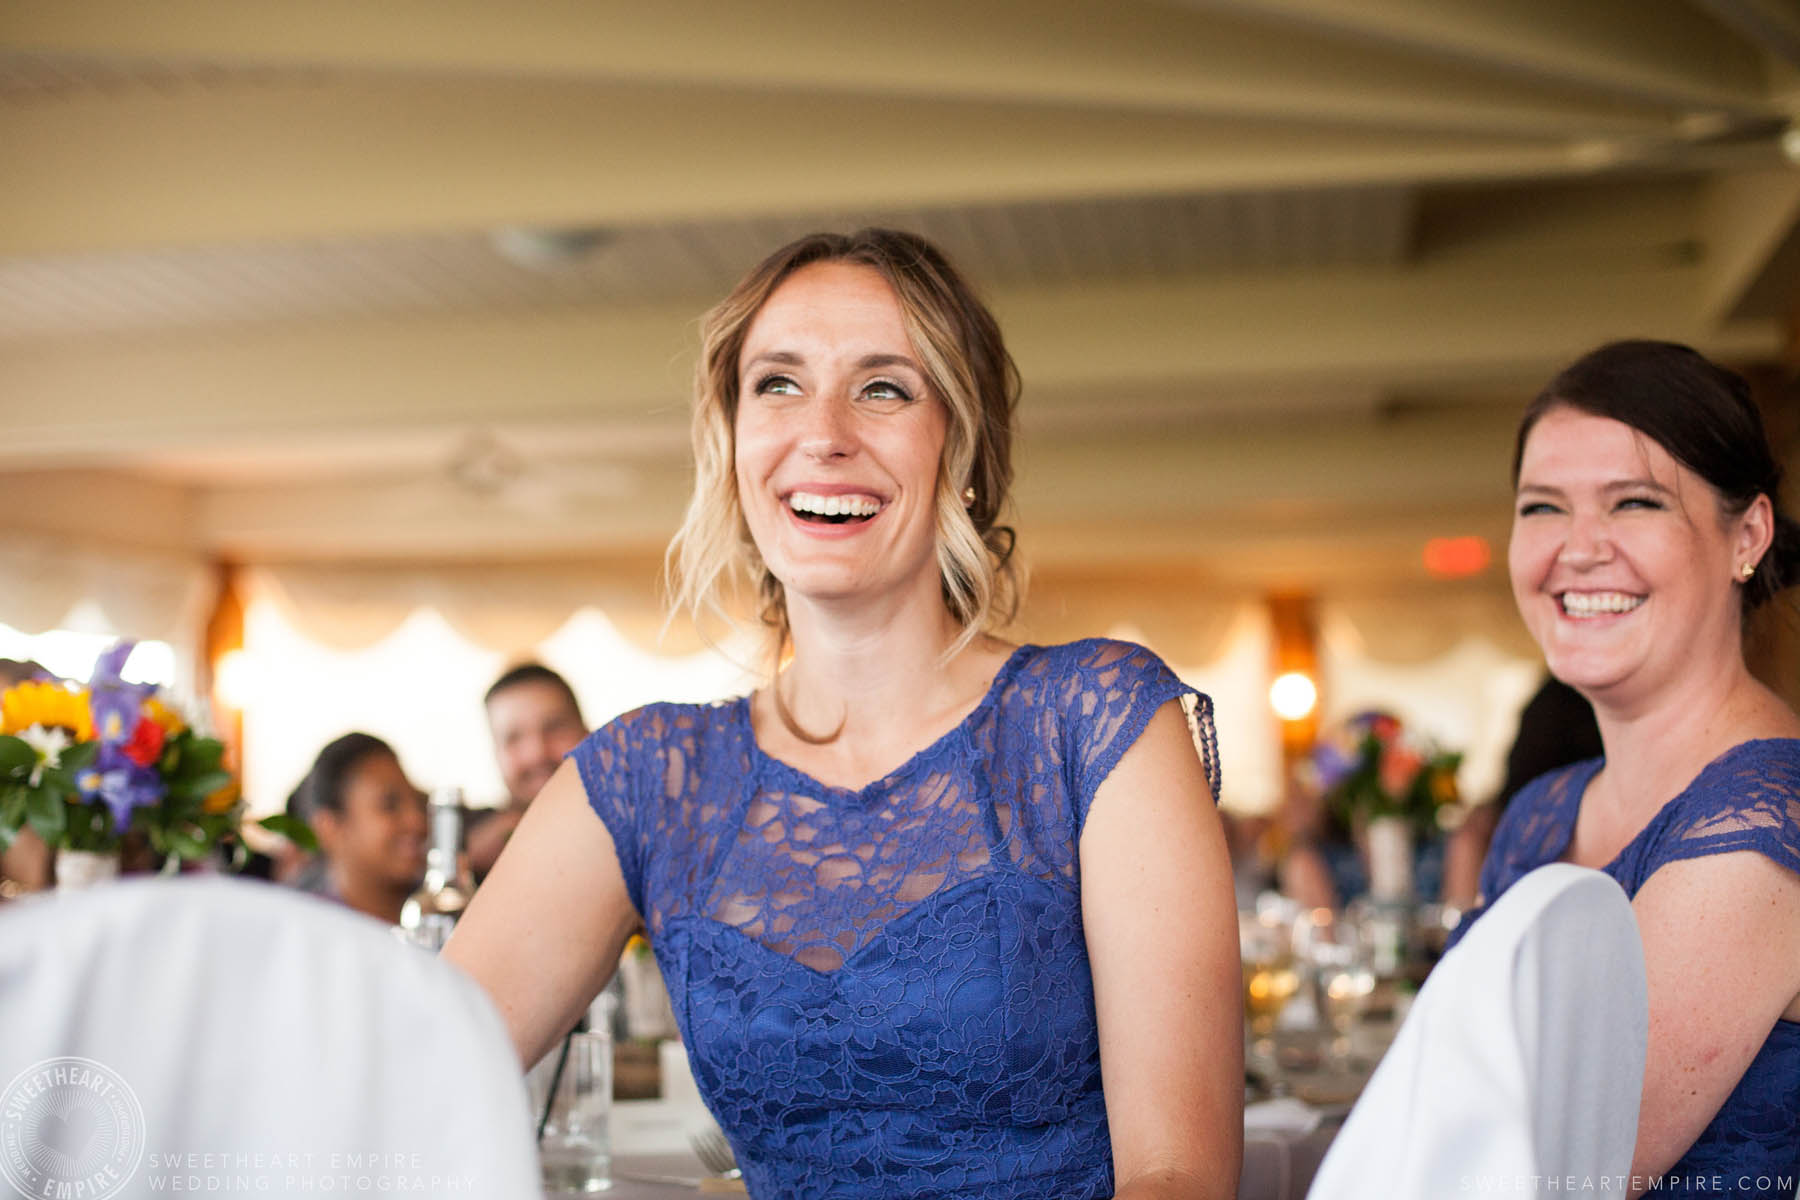 Happy wedding guest smiling, Rockway Vineyard Wedding, Niagara